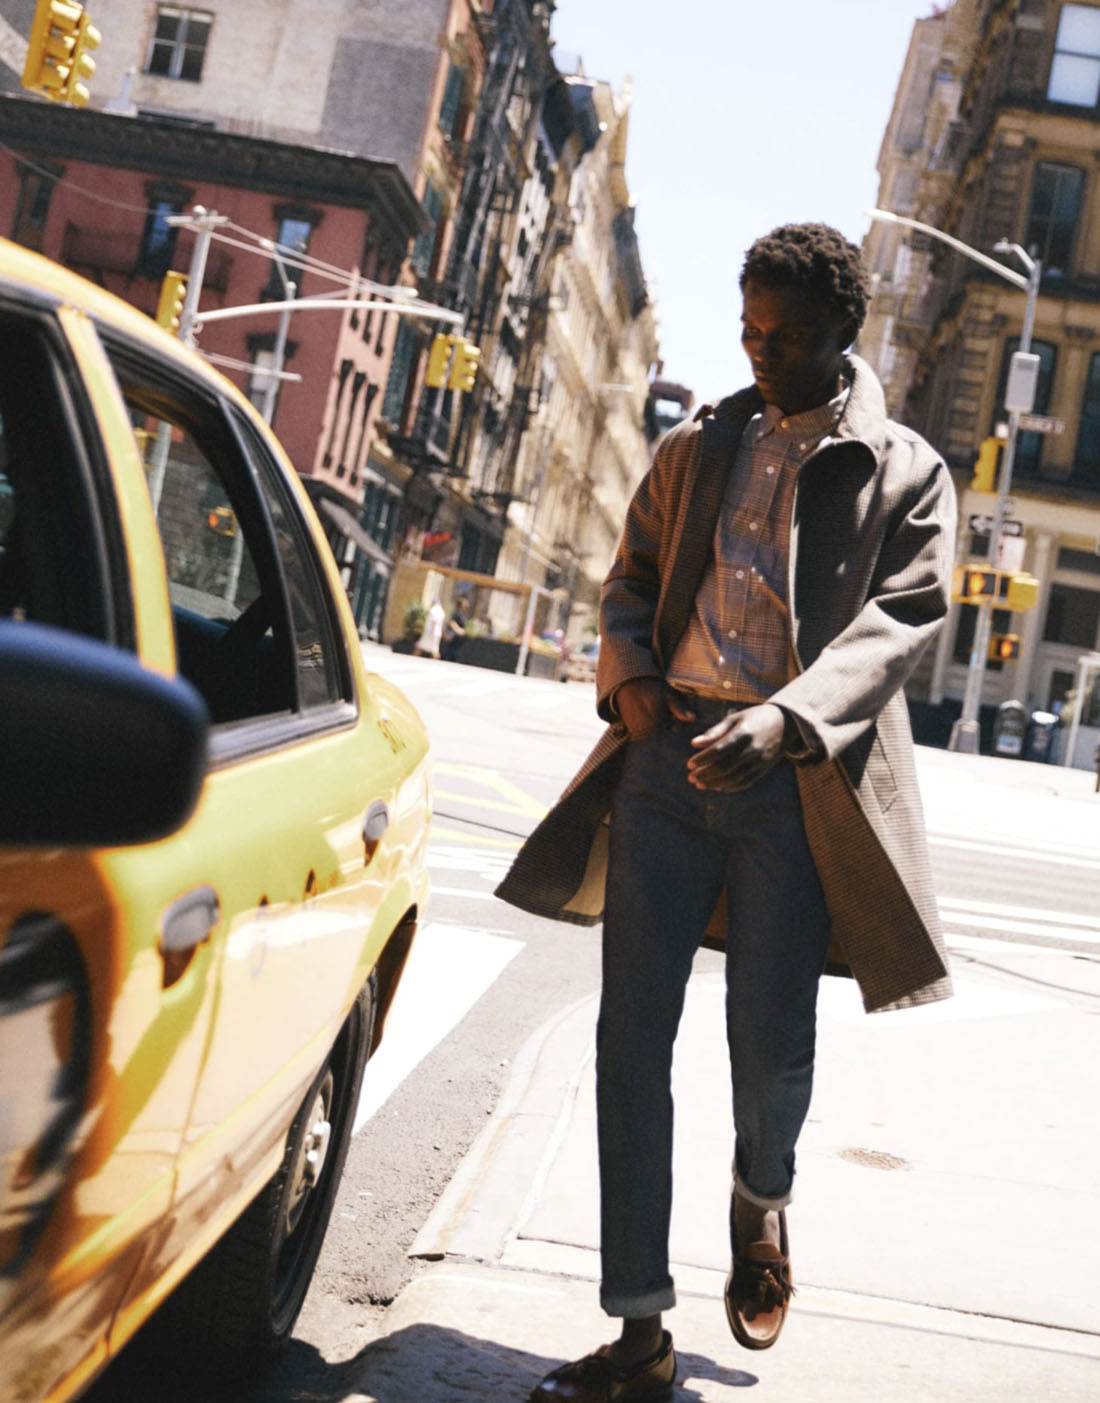 man standing on a sidewalk next to a yellow cab car